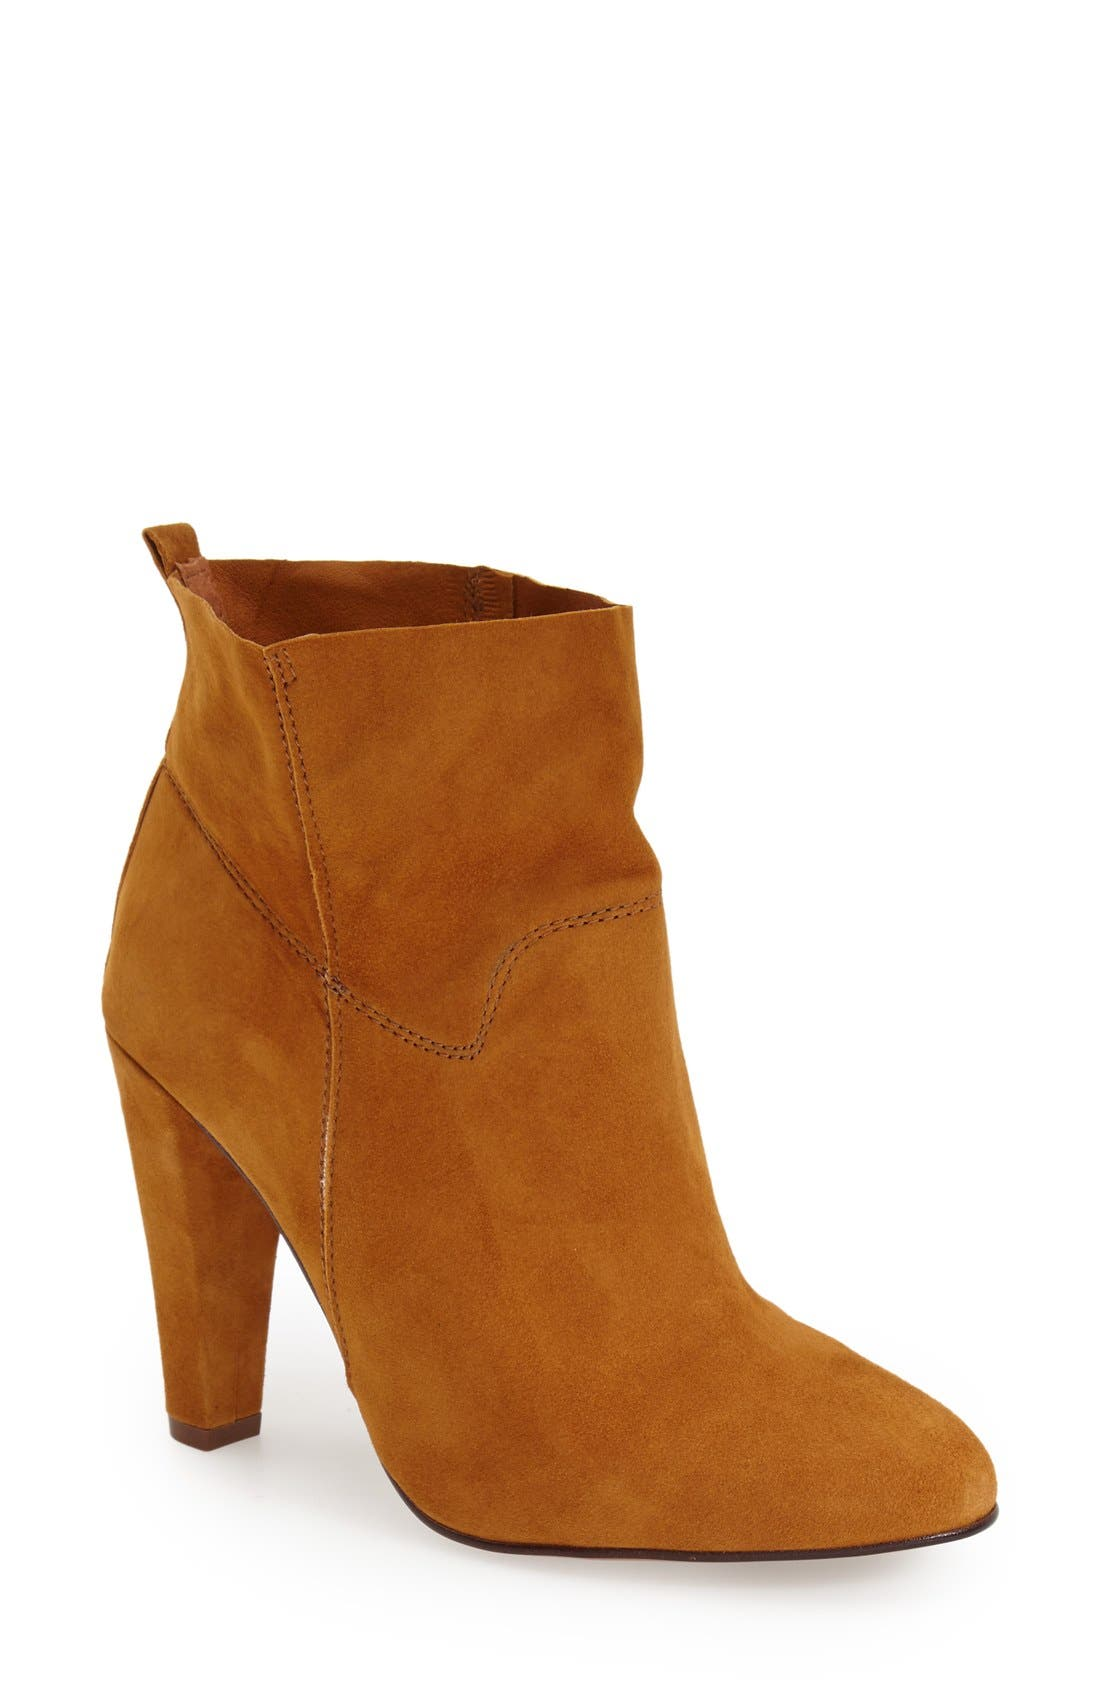 Alternate Image 1 Selected - Topshop 'Hourglass' Ankle Bootie (Women)